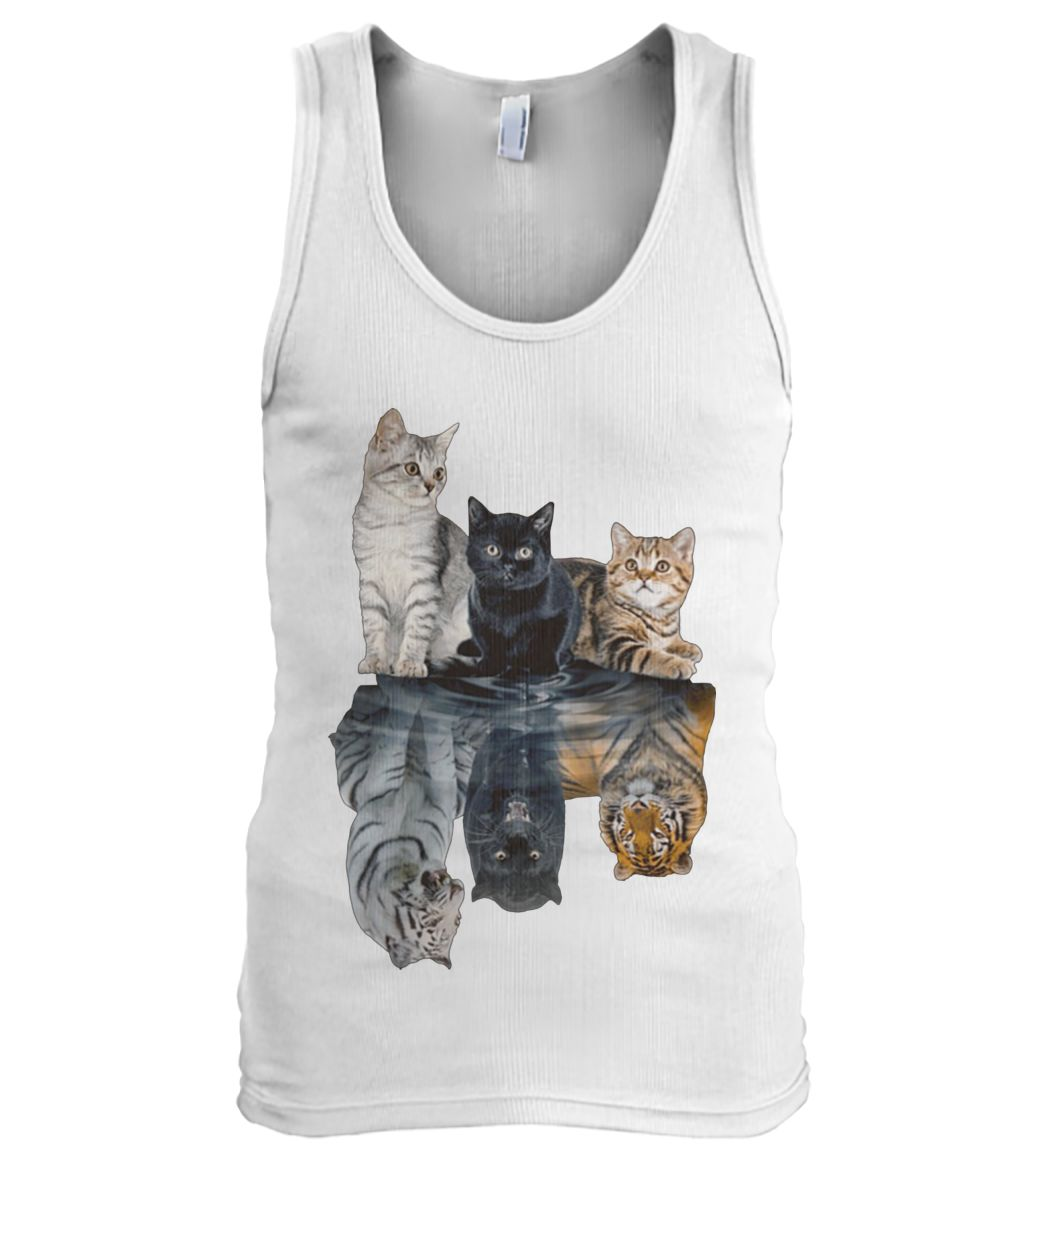 Cats reflection tigers men's tank top